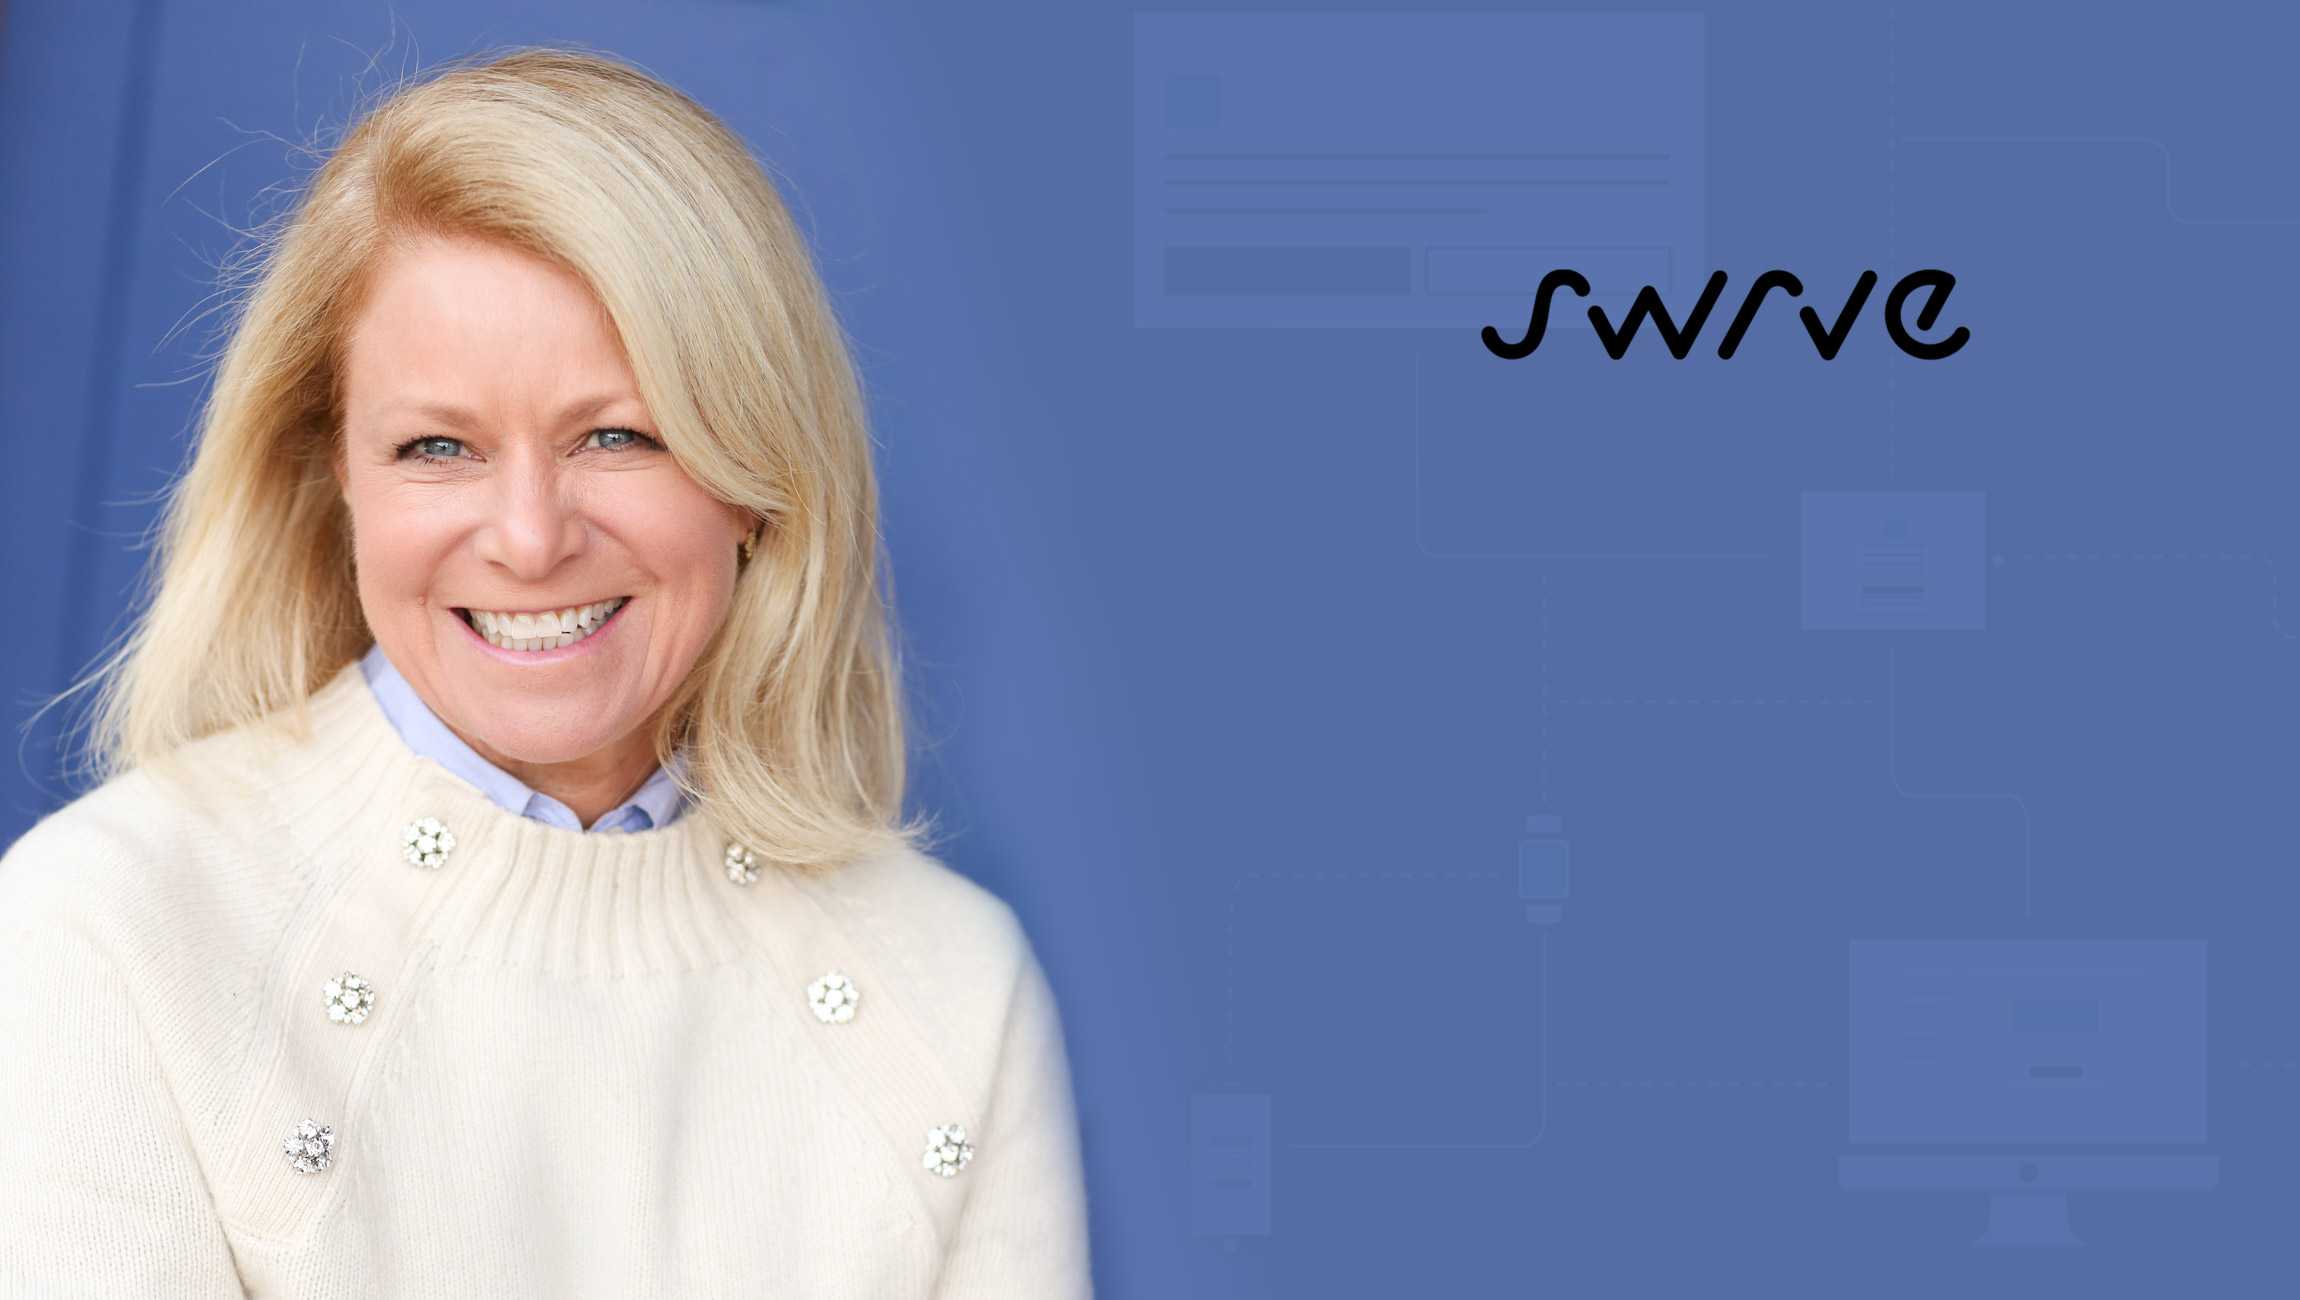 Swrve Appoints Tara Ryan as Chief Marketing Officer